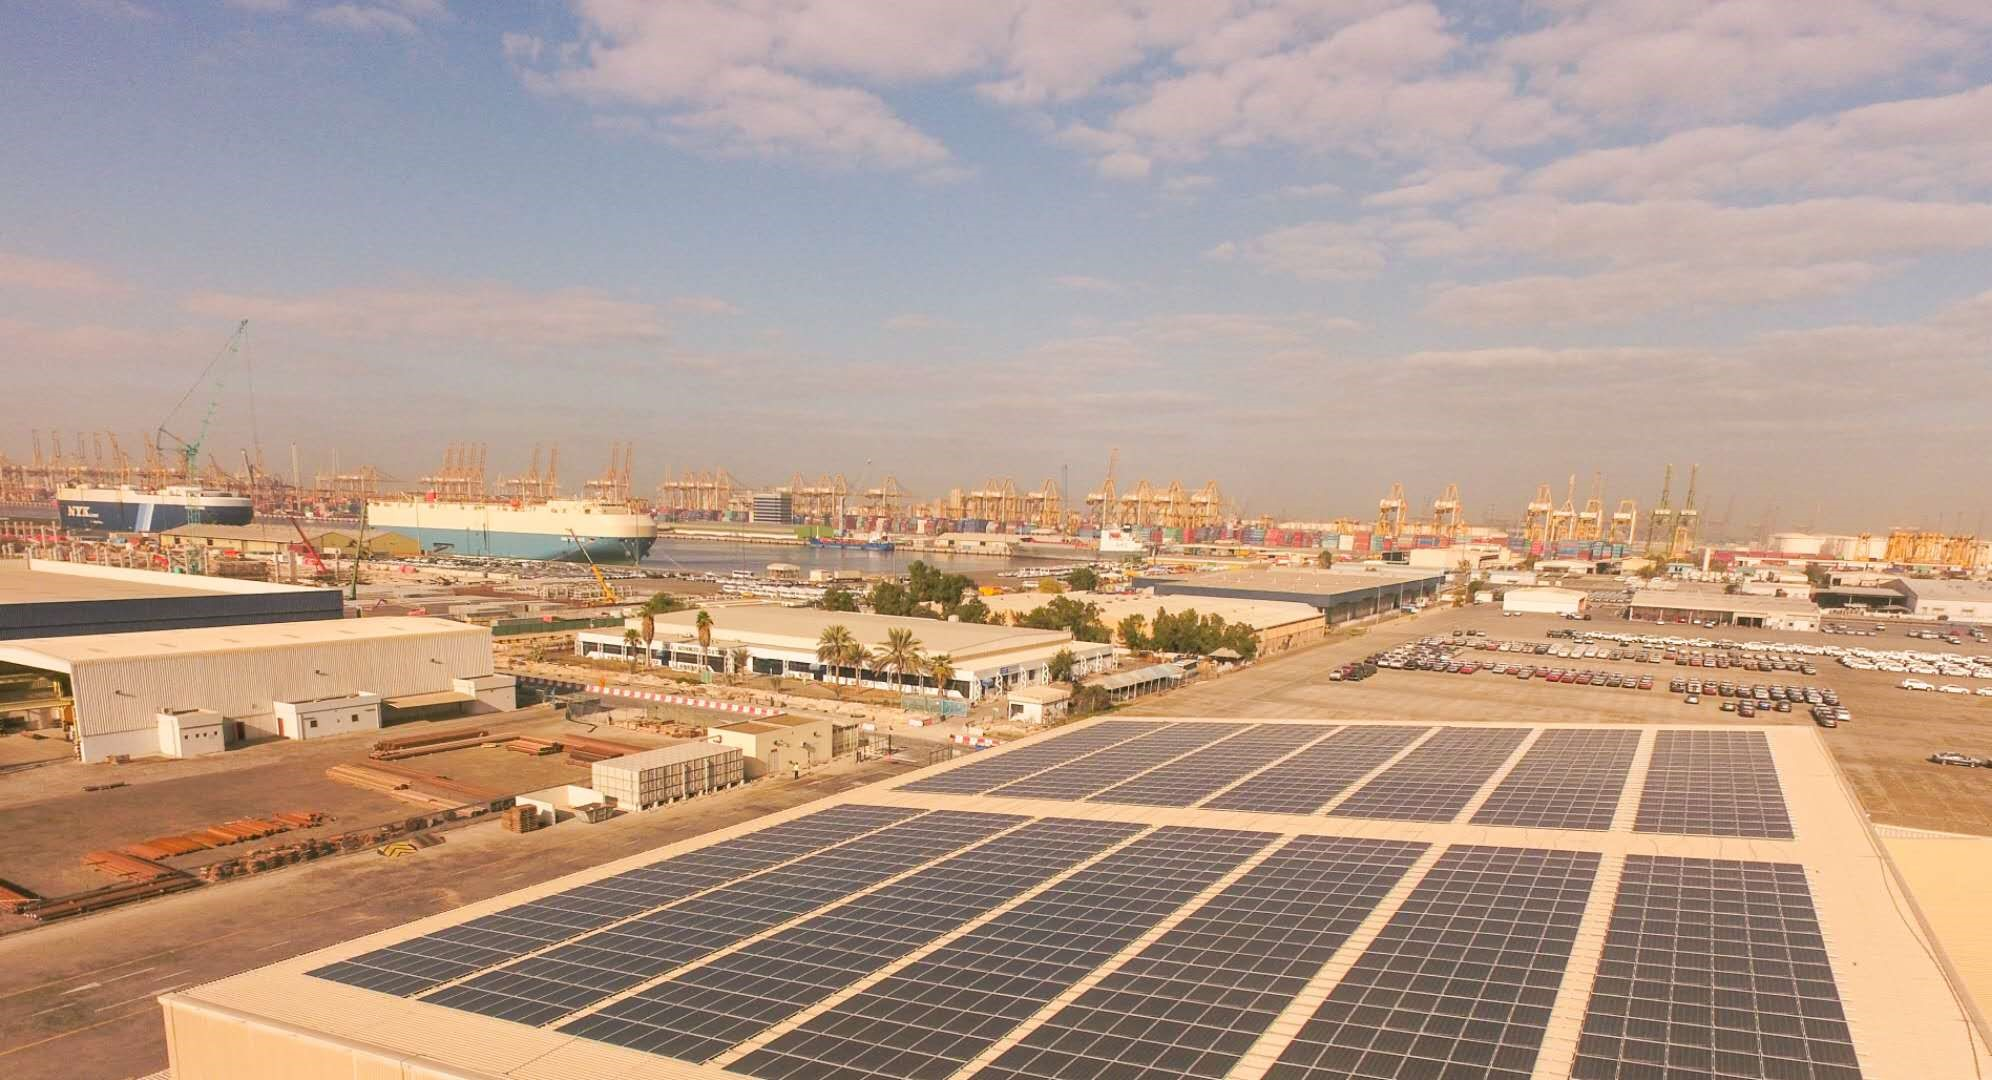 The 25.8MW installation at DP World, the largest decentralised PV project in the UAE. Image: Huawei